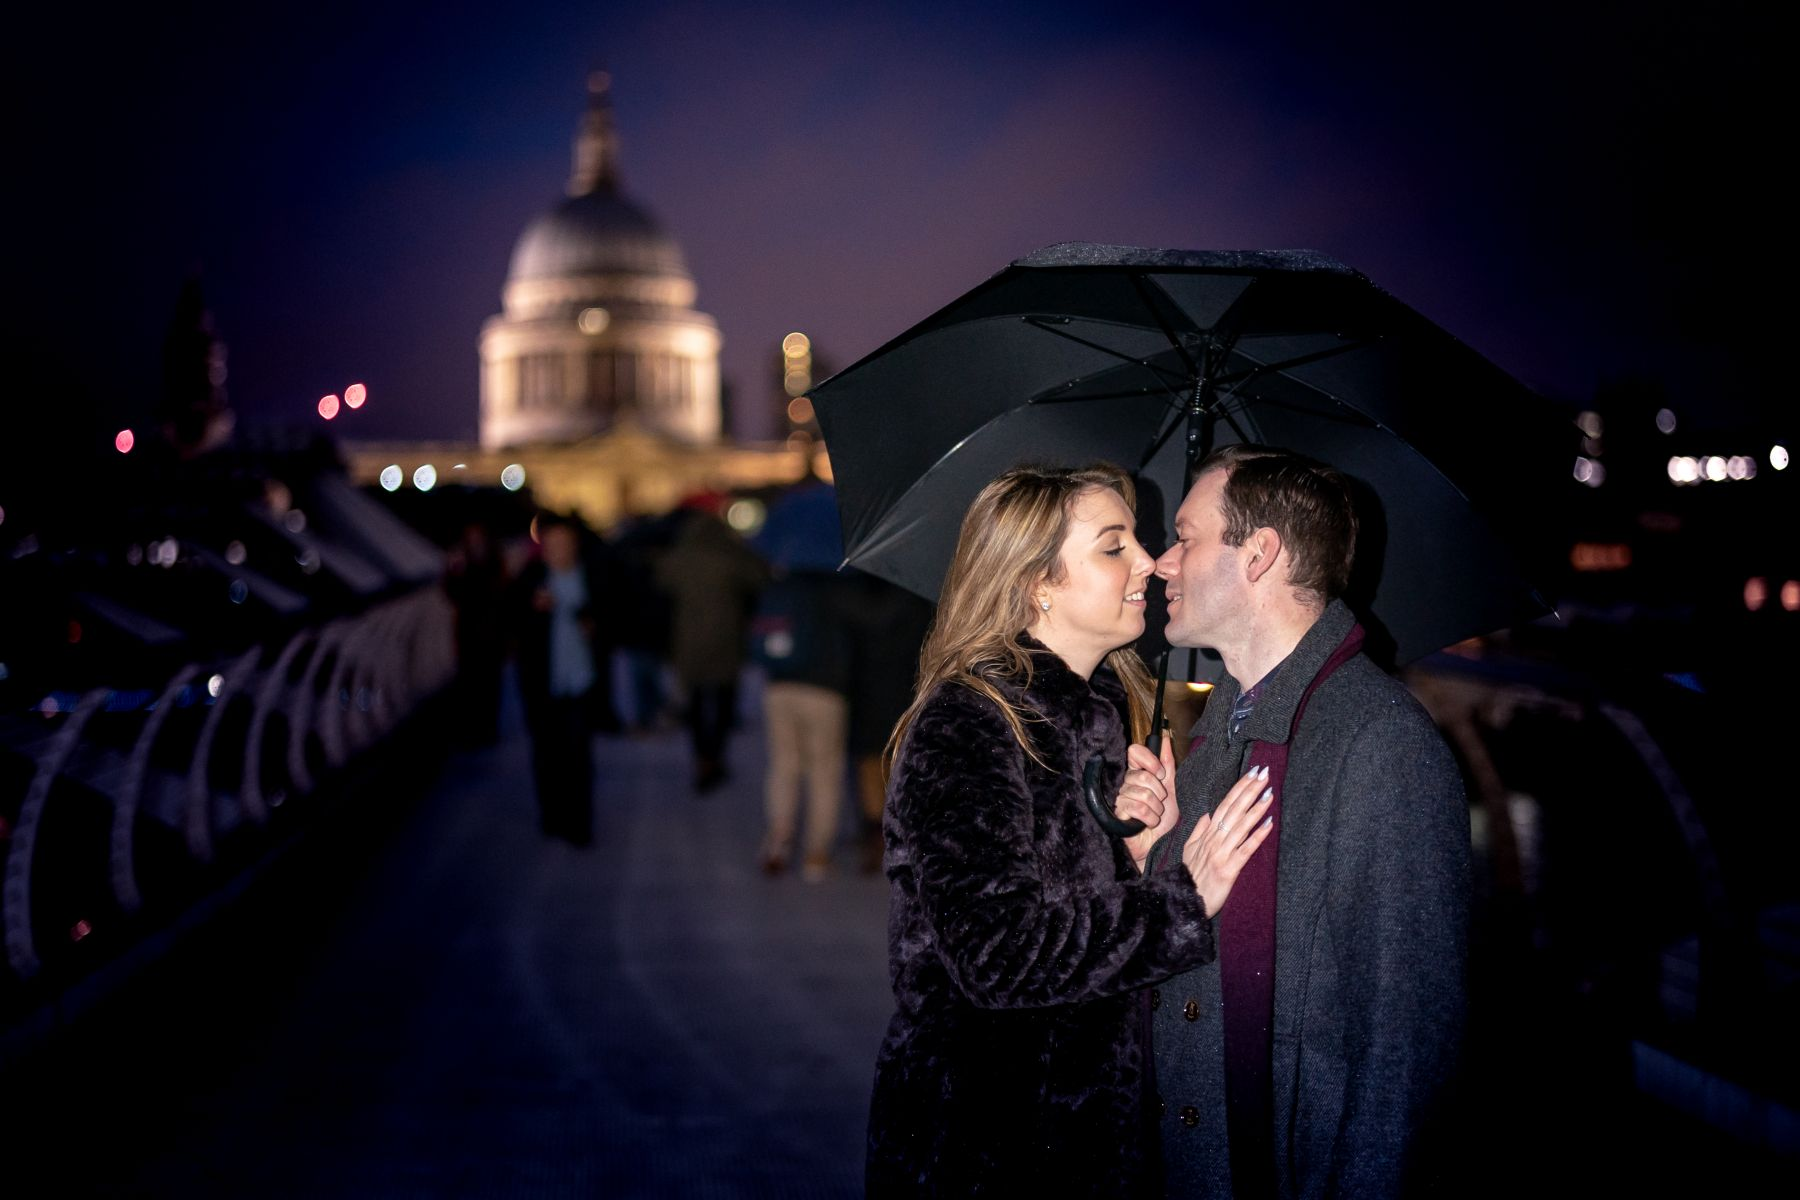 YFFUK Phil Endicott Fenwick Millennium Bridge London engagement shoot St Pauls